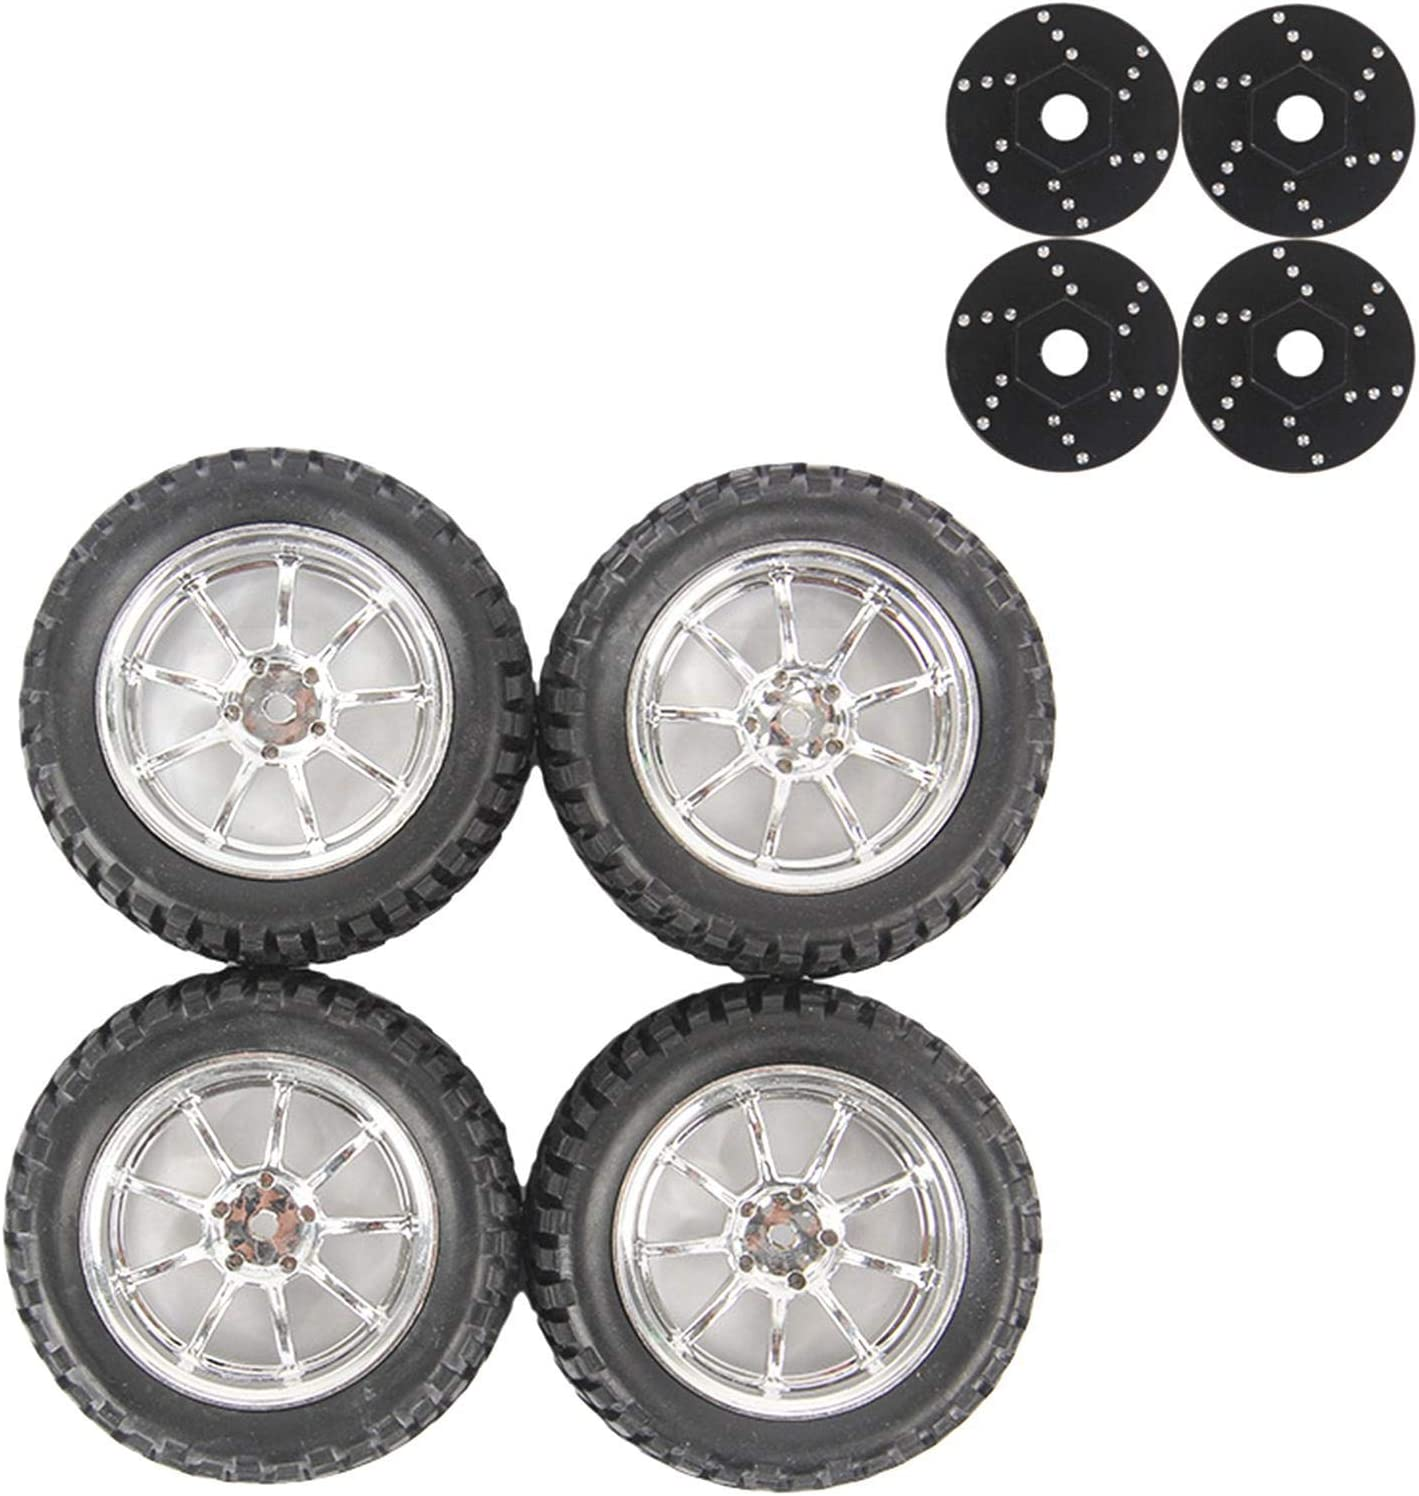 SYCOOVEN Direct sale of manufacturer We OFFer at cheap prices 4pcs Upgrading Toy Replacement Tyre Set C5 Prof to 12MM